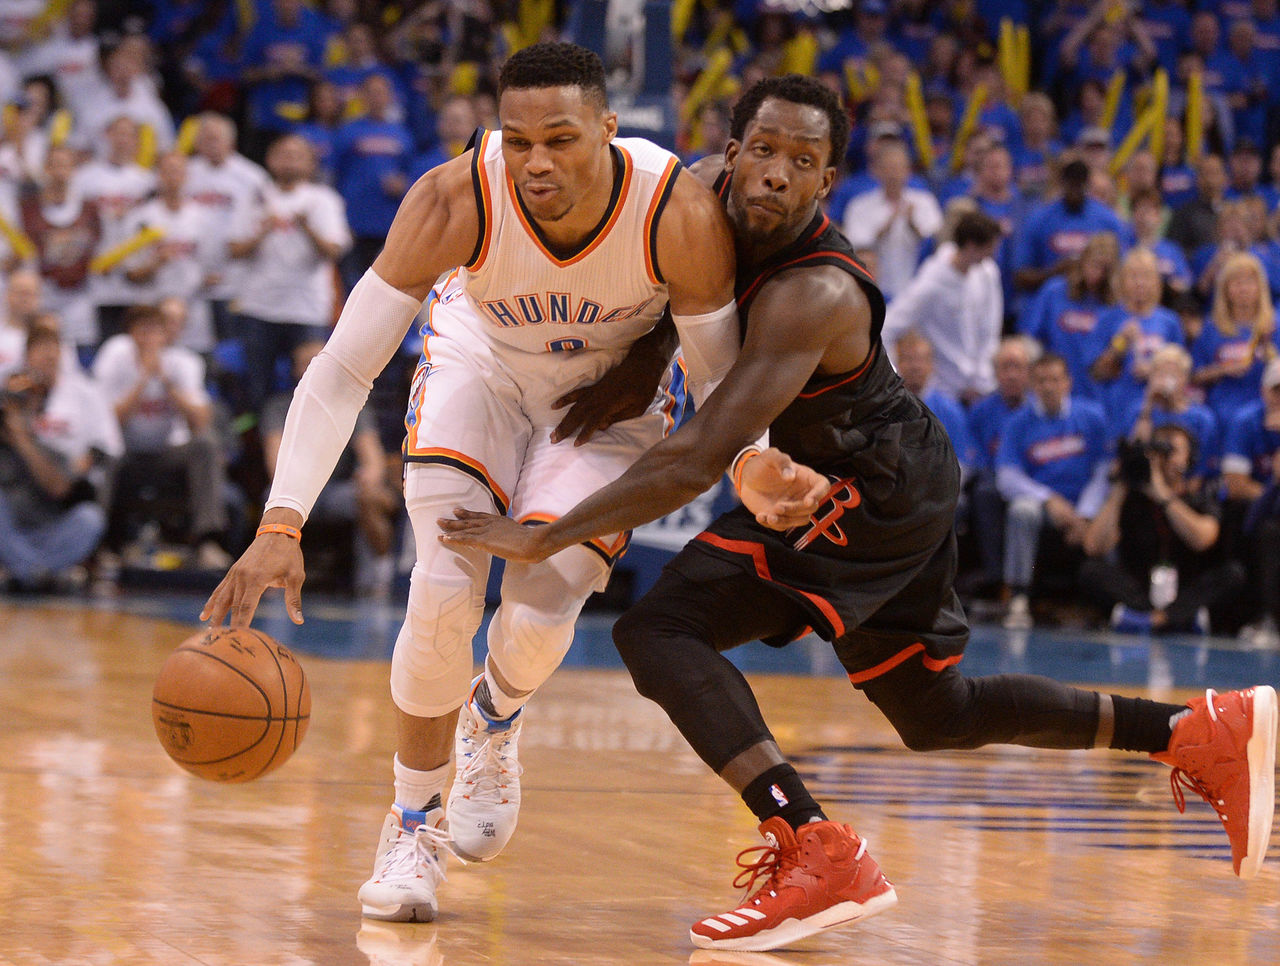 Cropped 2017 04 22t042710z 112104758 nocid rtrmadp 3 nba playoffs houston rockets at oklahoma city thunder